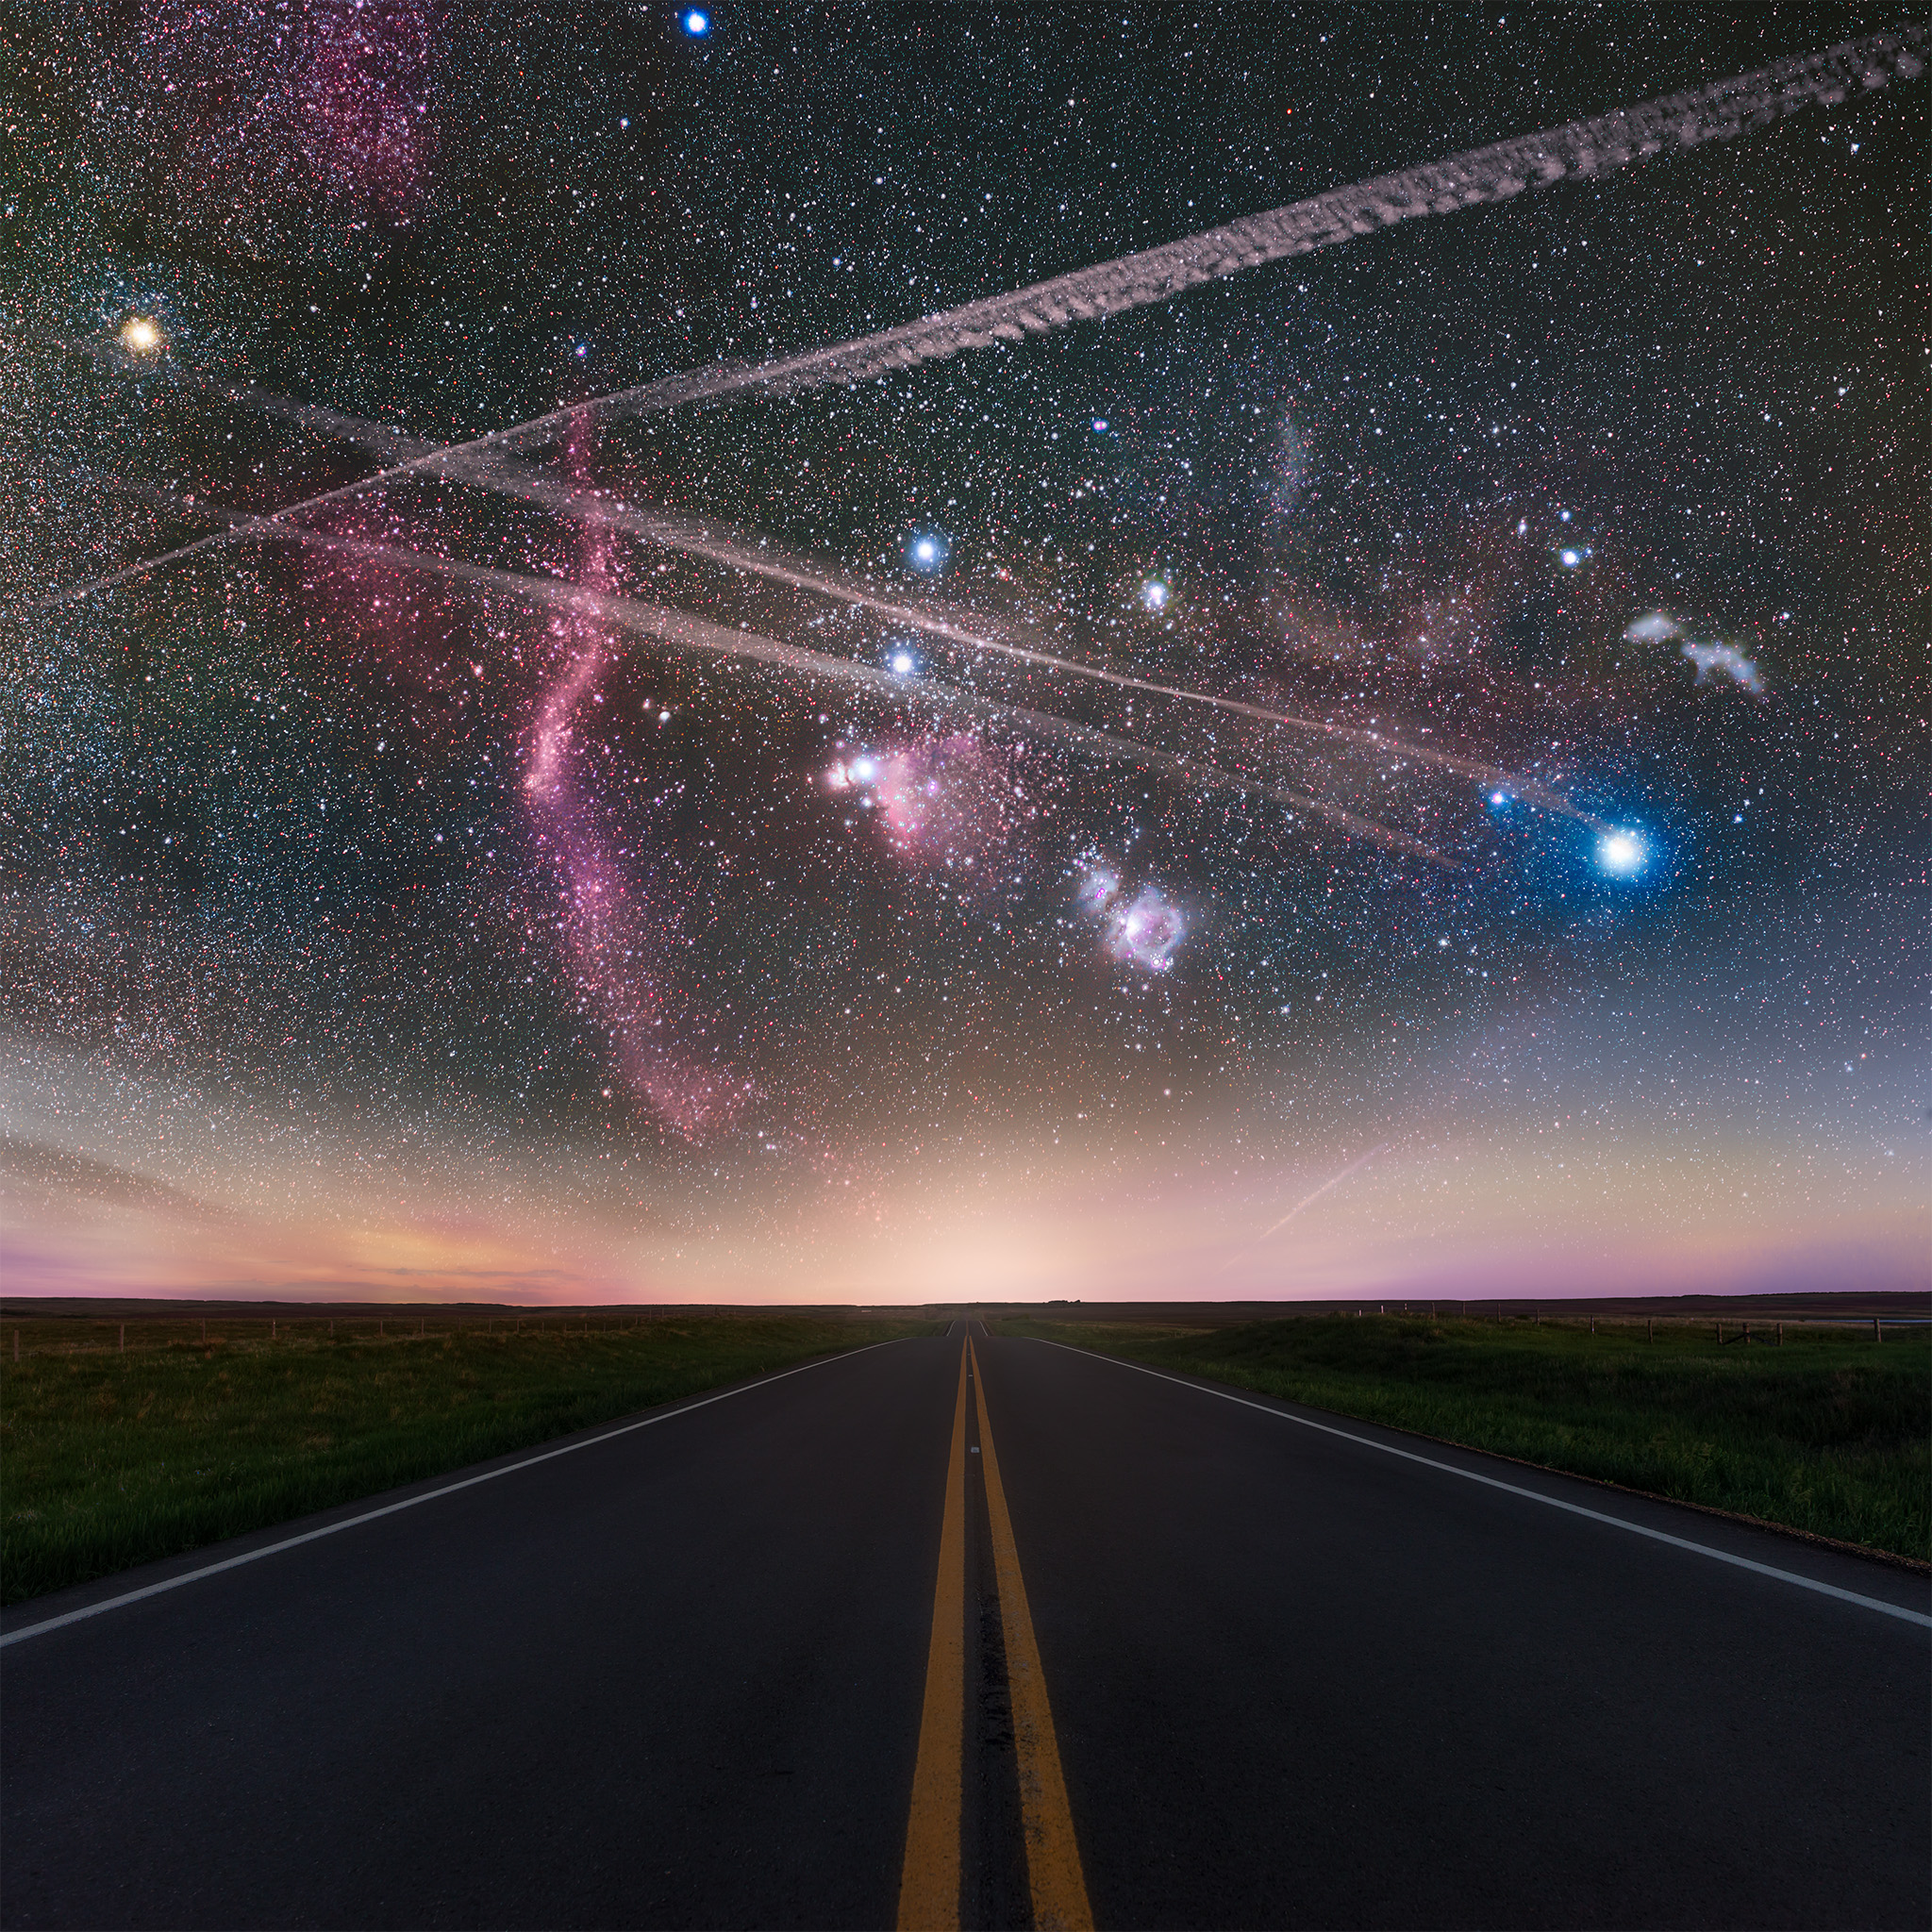 Landscape astrophotography in Saskatchewan of the Orion constellation over a road